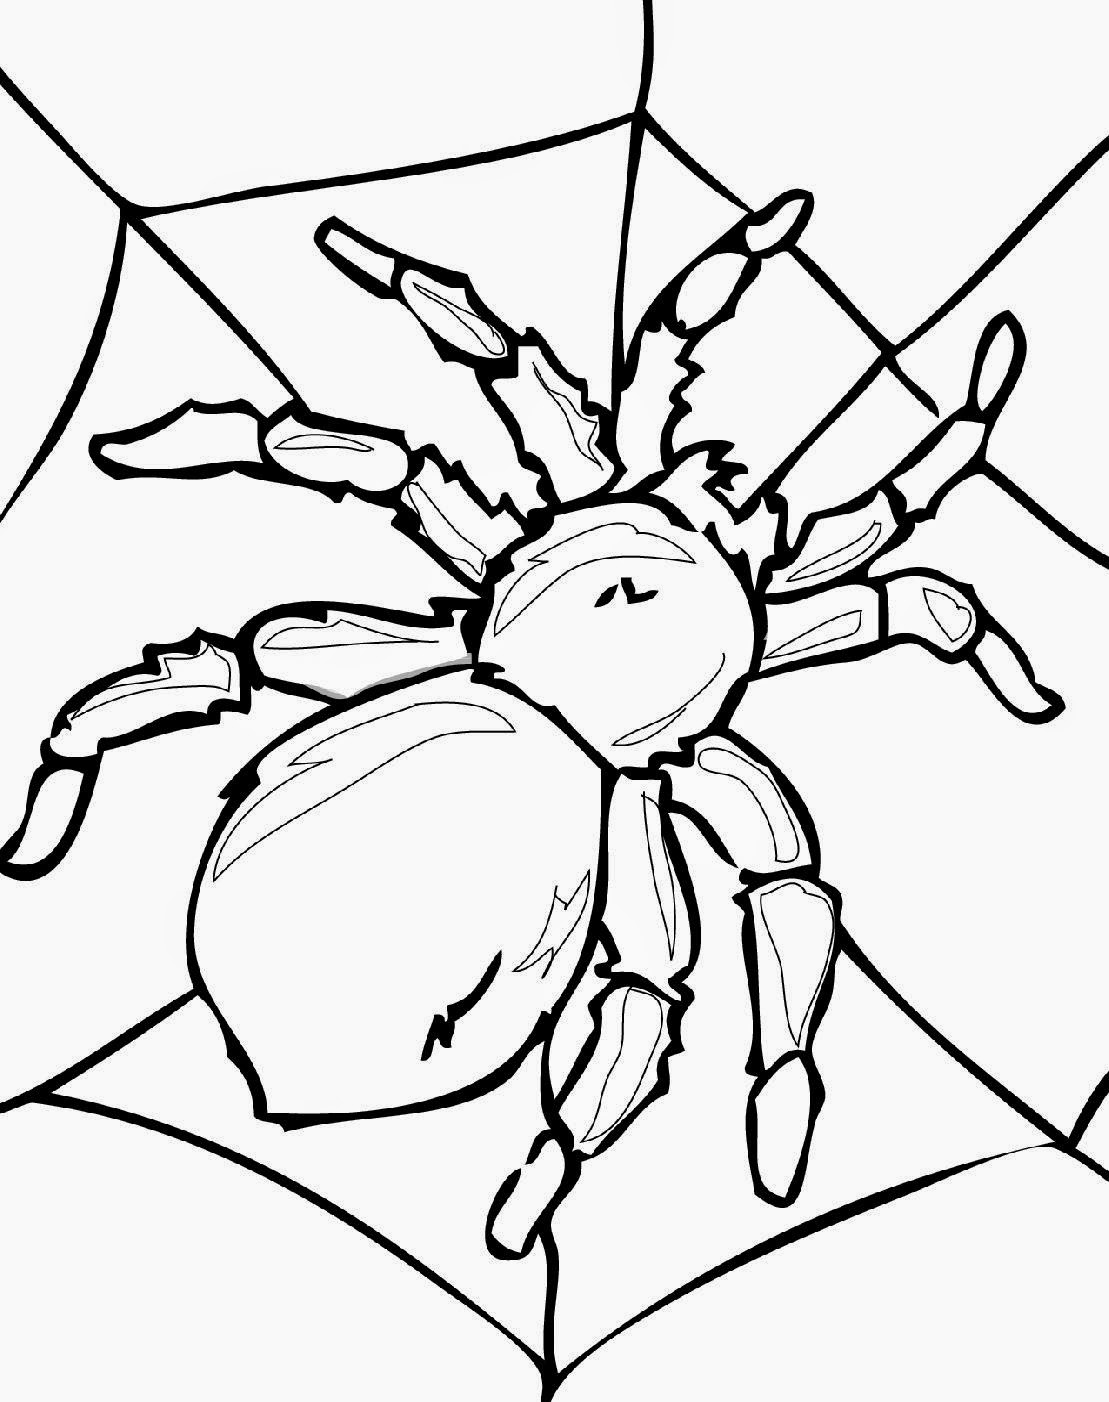 insect printable coloring pages - photo#5